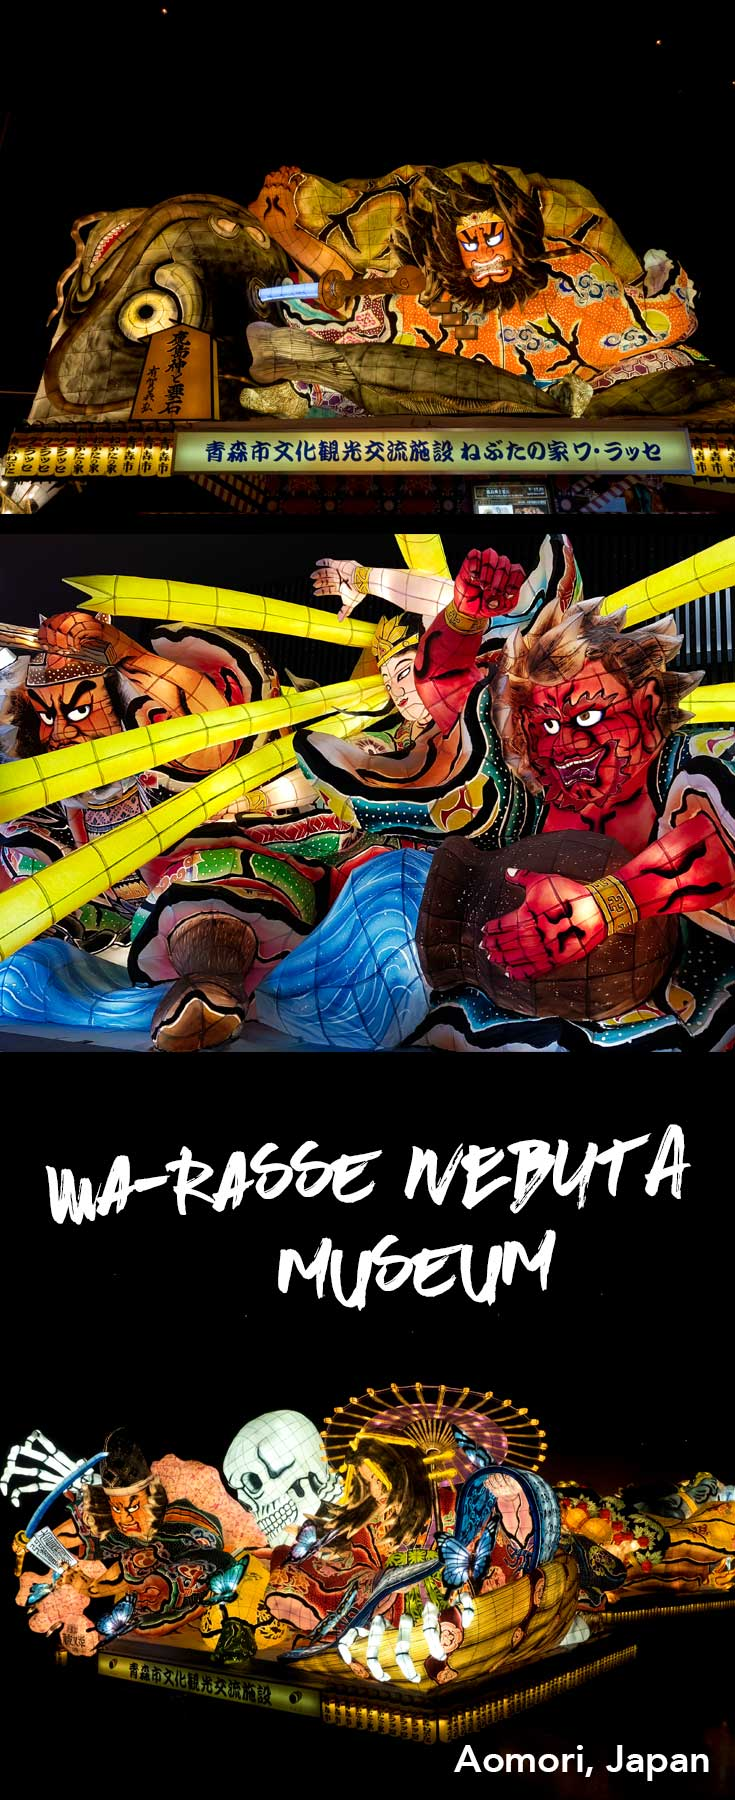 Experience the Nebuta Matsuri fun and festival at the Wa-Rasse Nebuta Museum